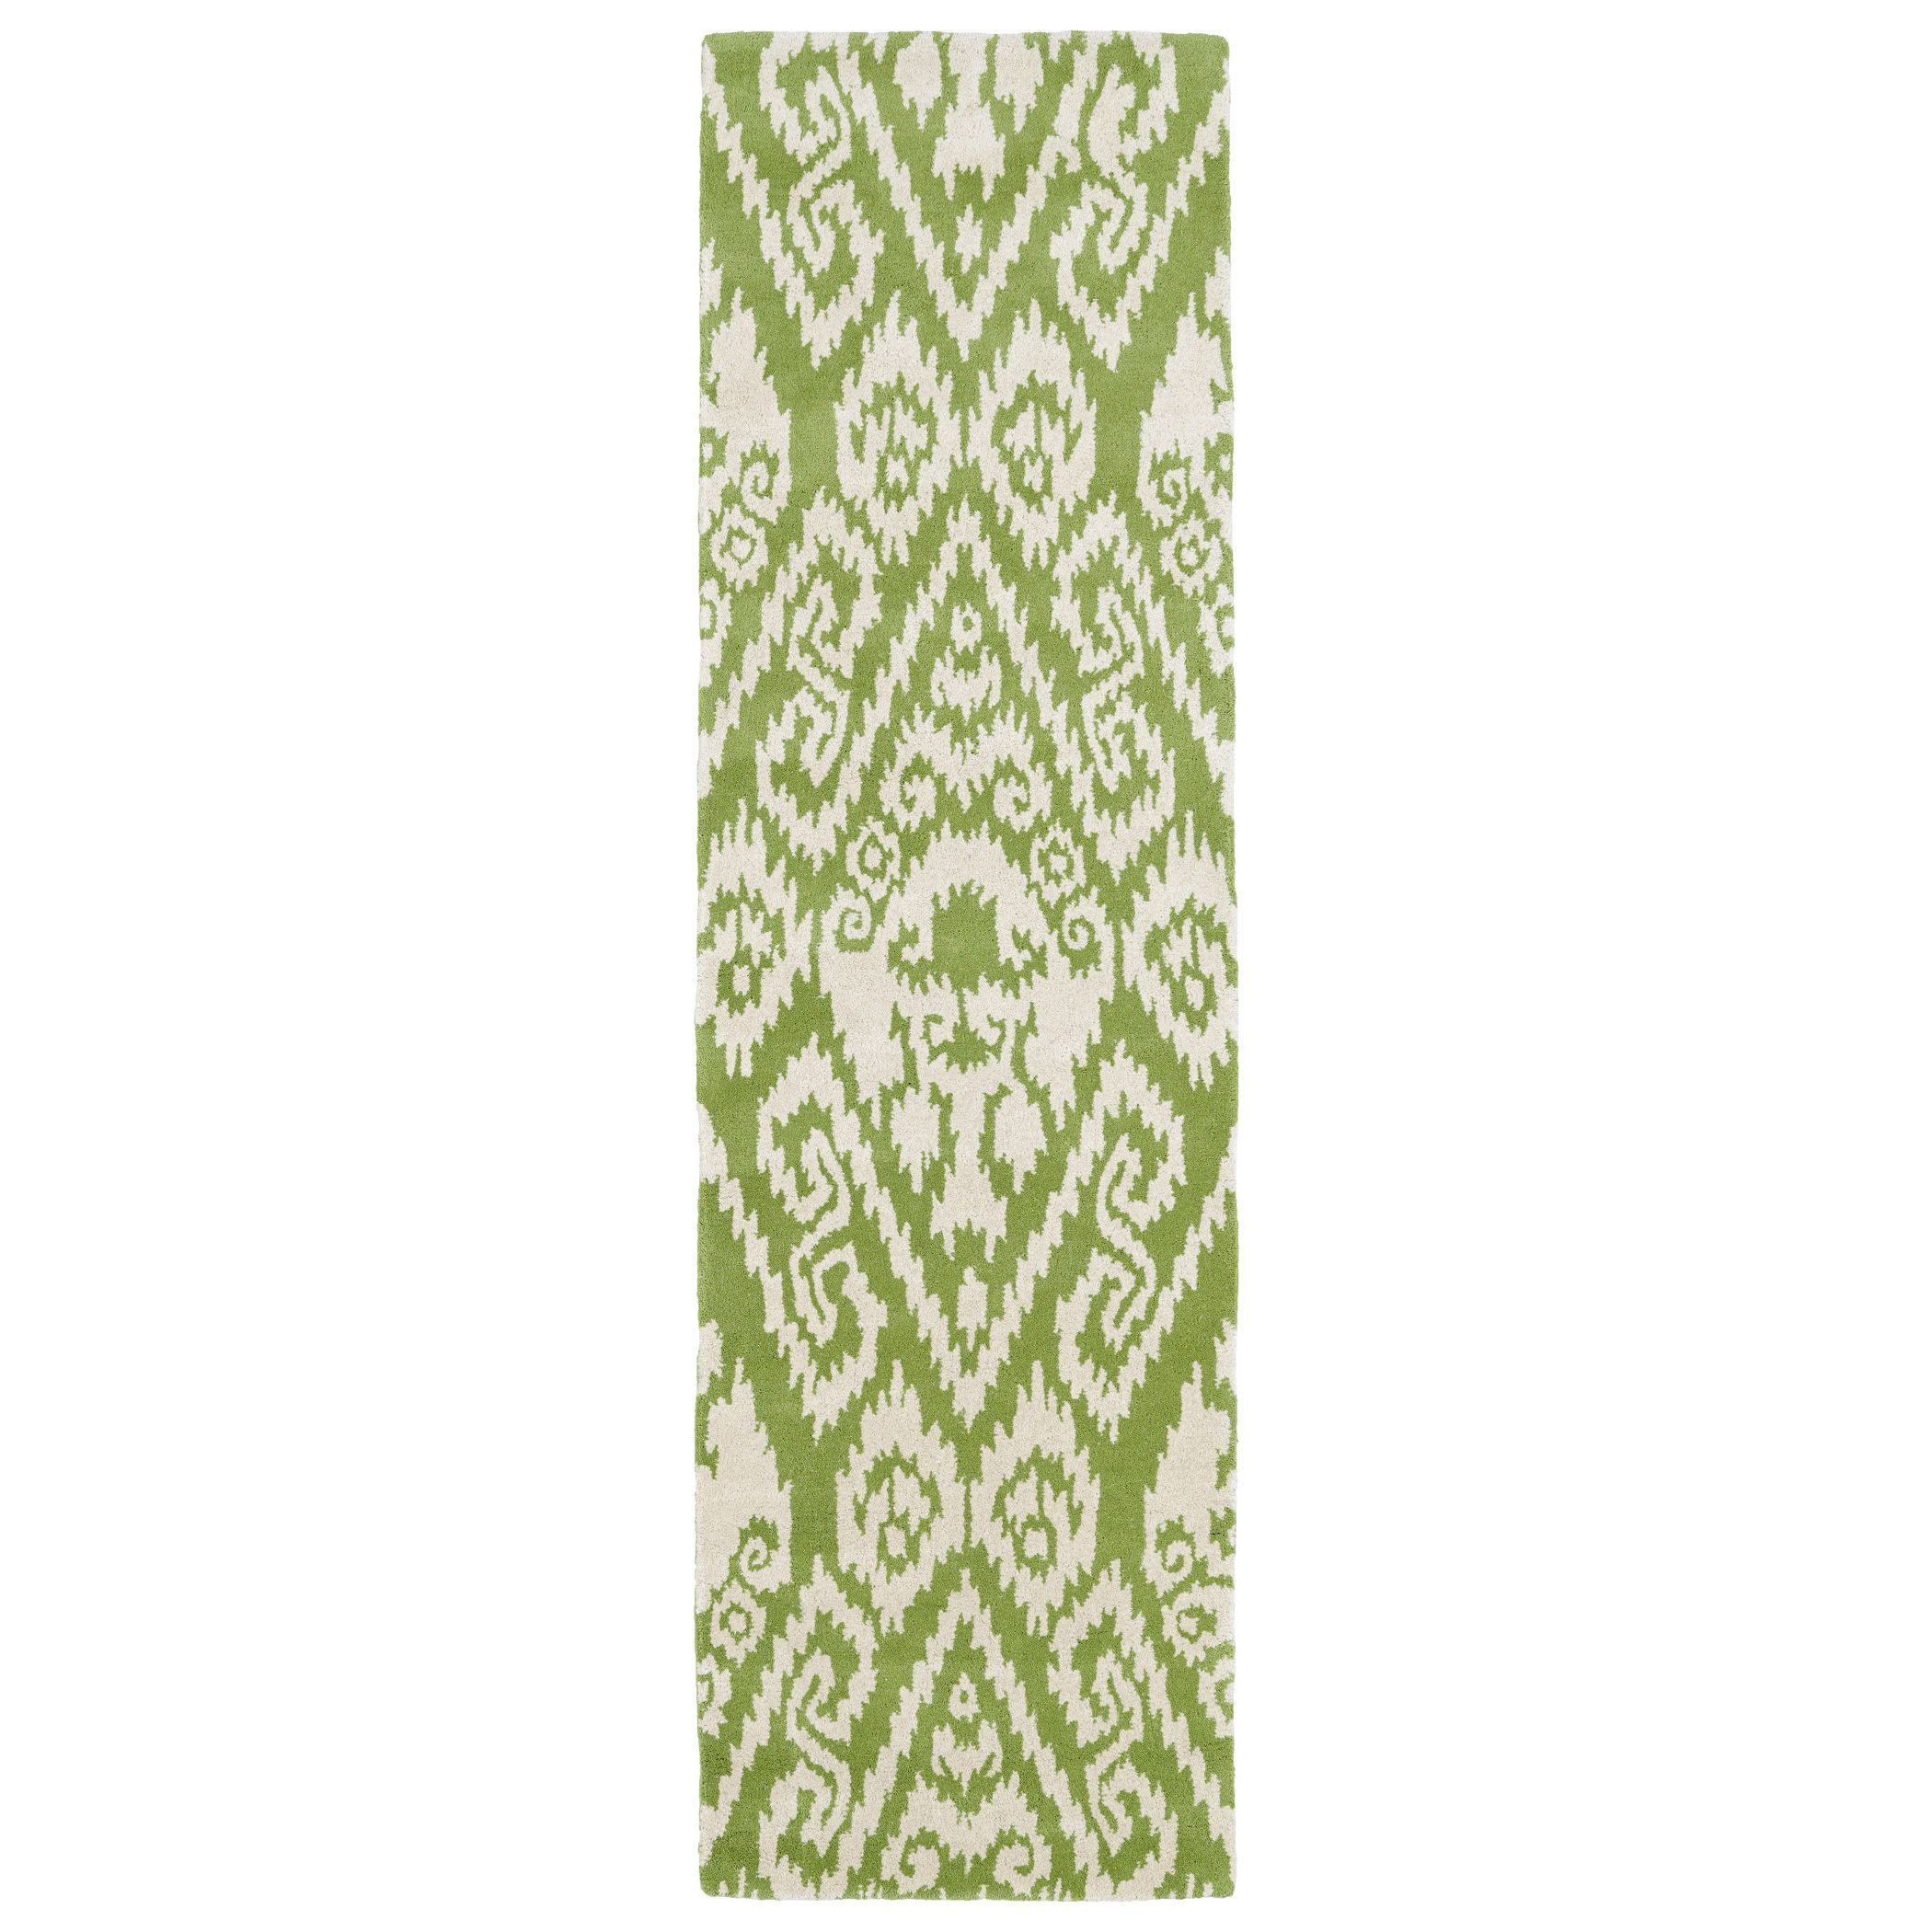 Spice up your home decor with the Runway runner rug, crafted with 100-percent wool for comfort and style. With a cotton canvas backing to provide additional stability, this striking transitional rug decorates the home with a green and ivory ikat pattern.